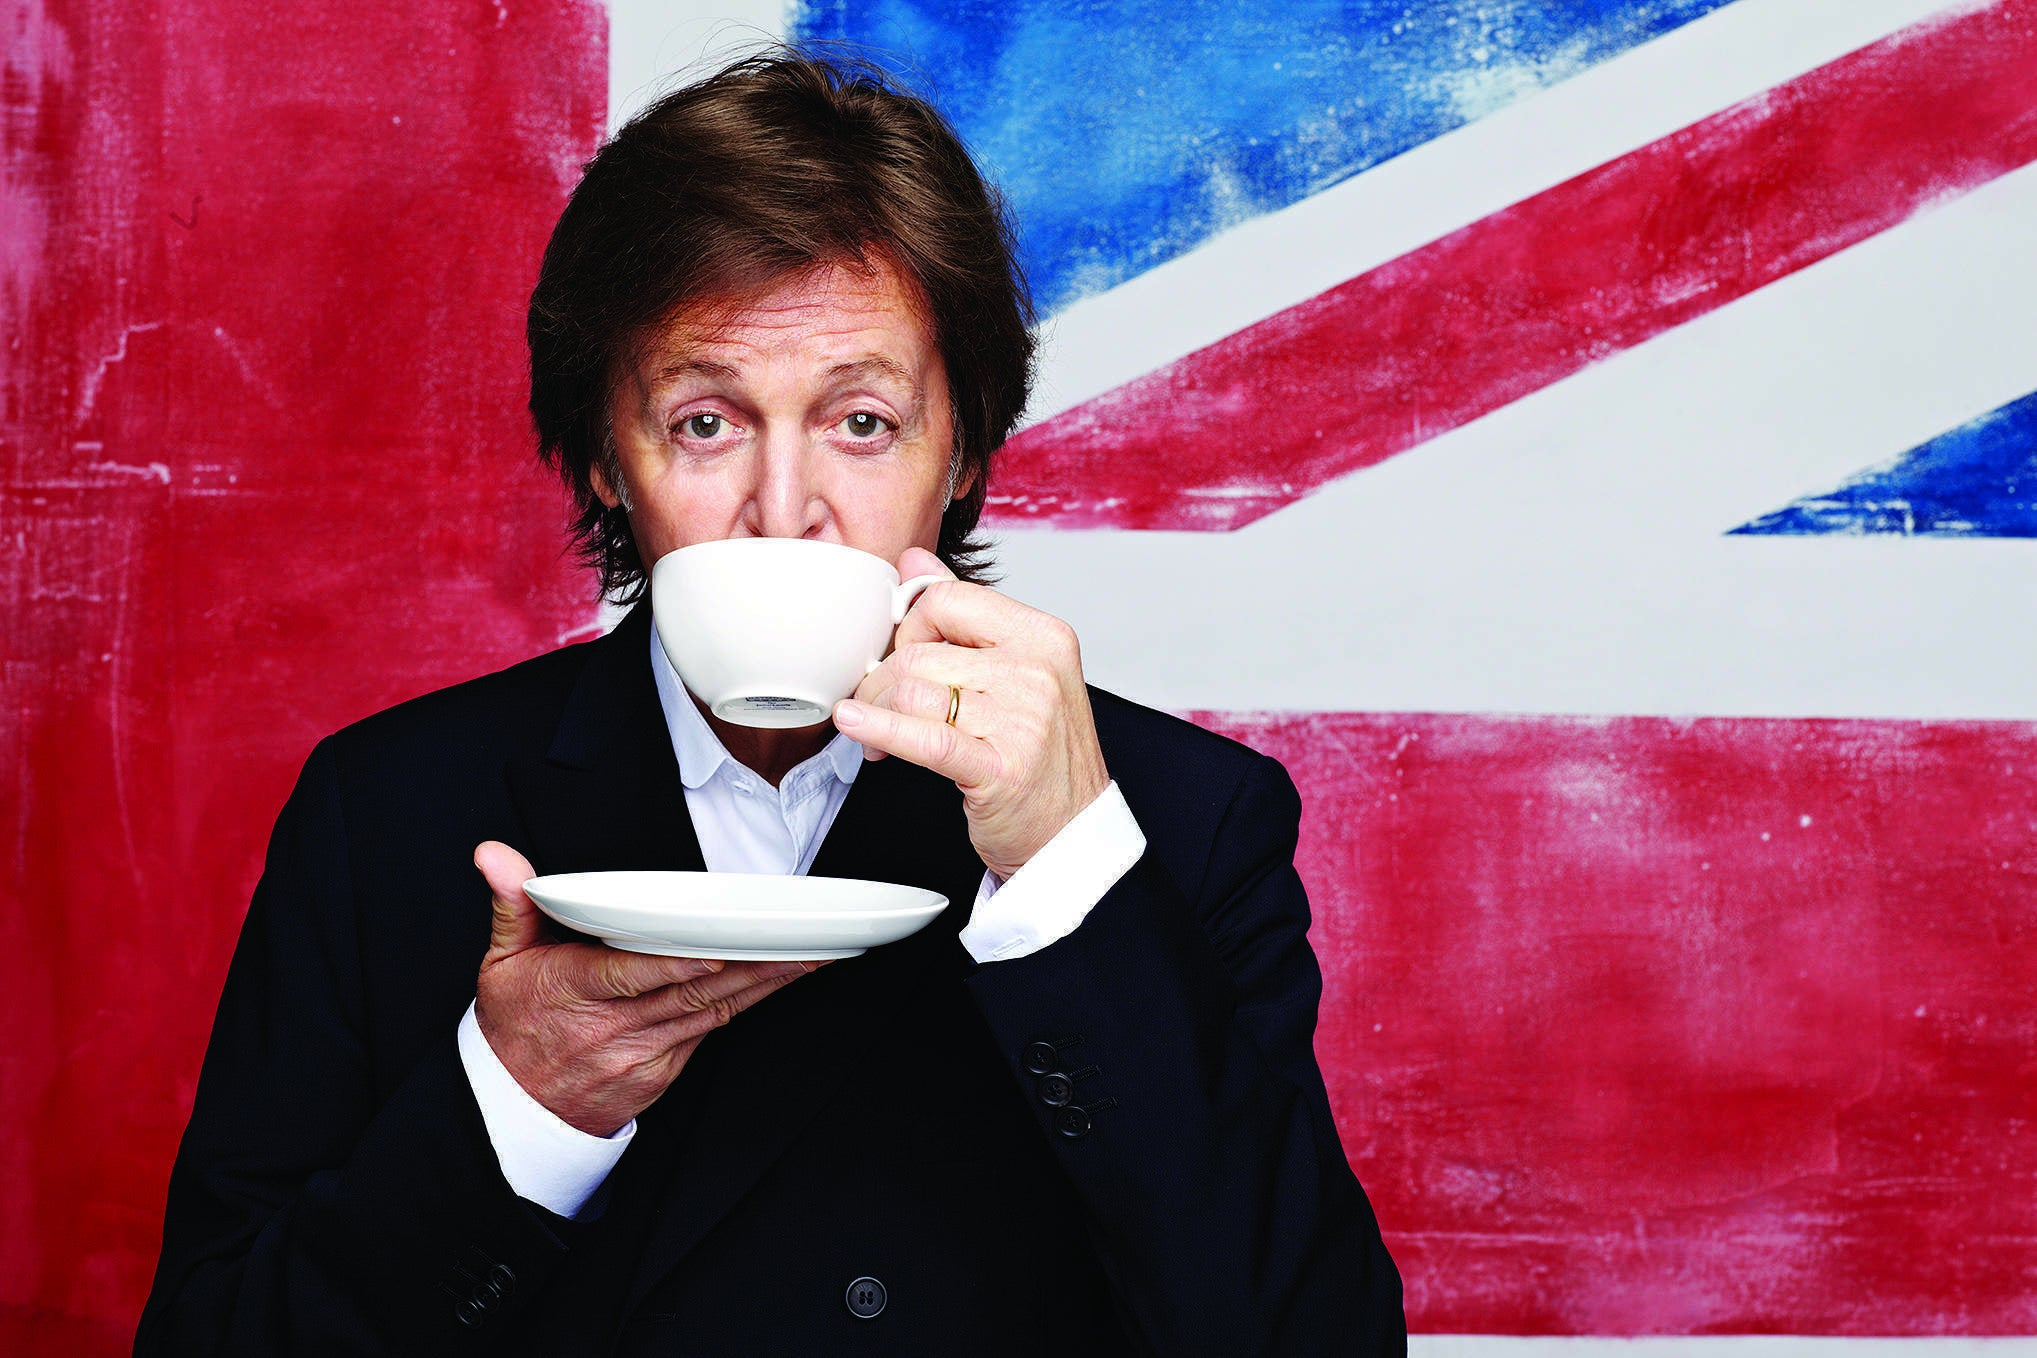 Baby you're a rich man: the impossible madness of Paul McCartney's life